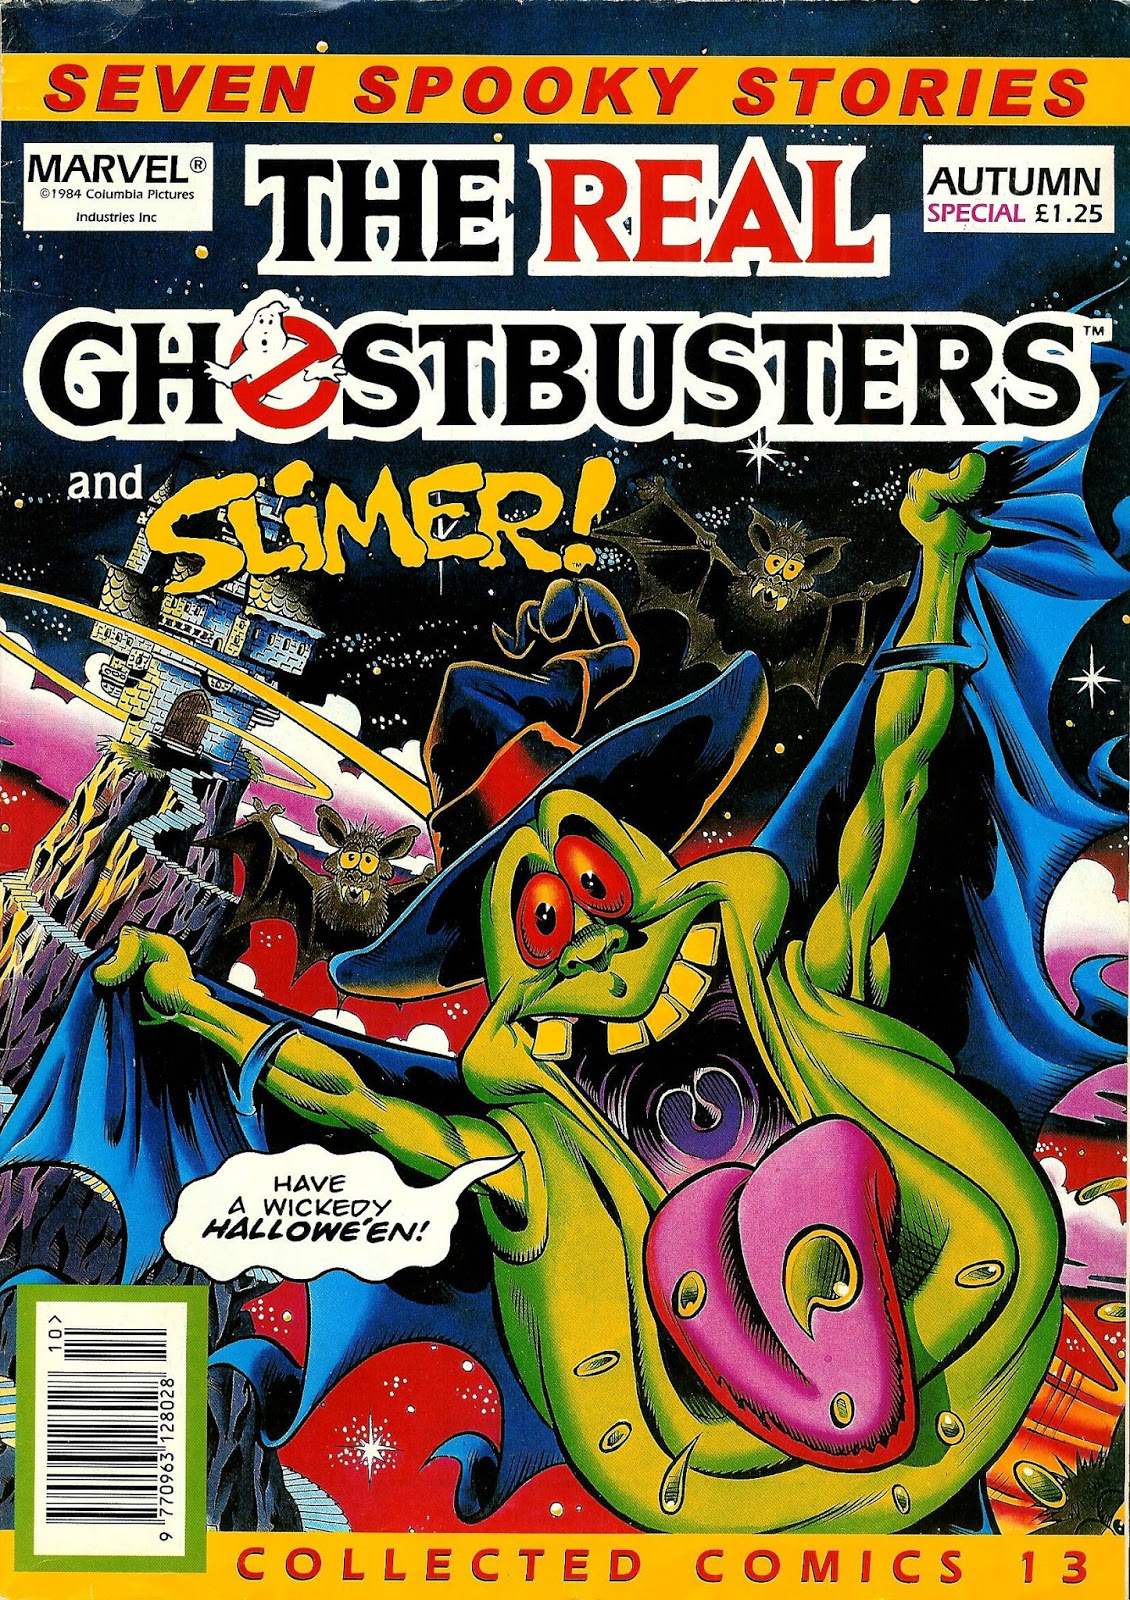 Marvel Comics Ltd- The Real Ghostbusters Collected Comics 13 Autumn Special